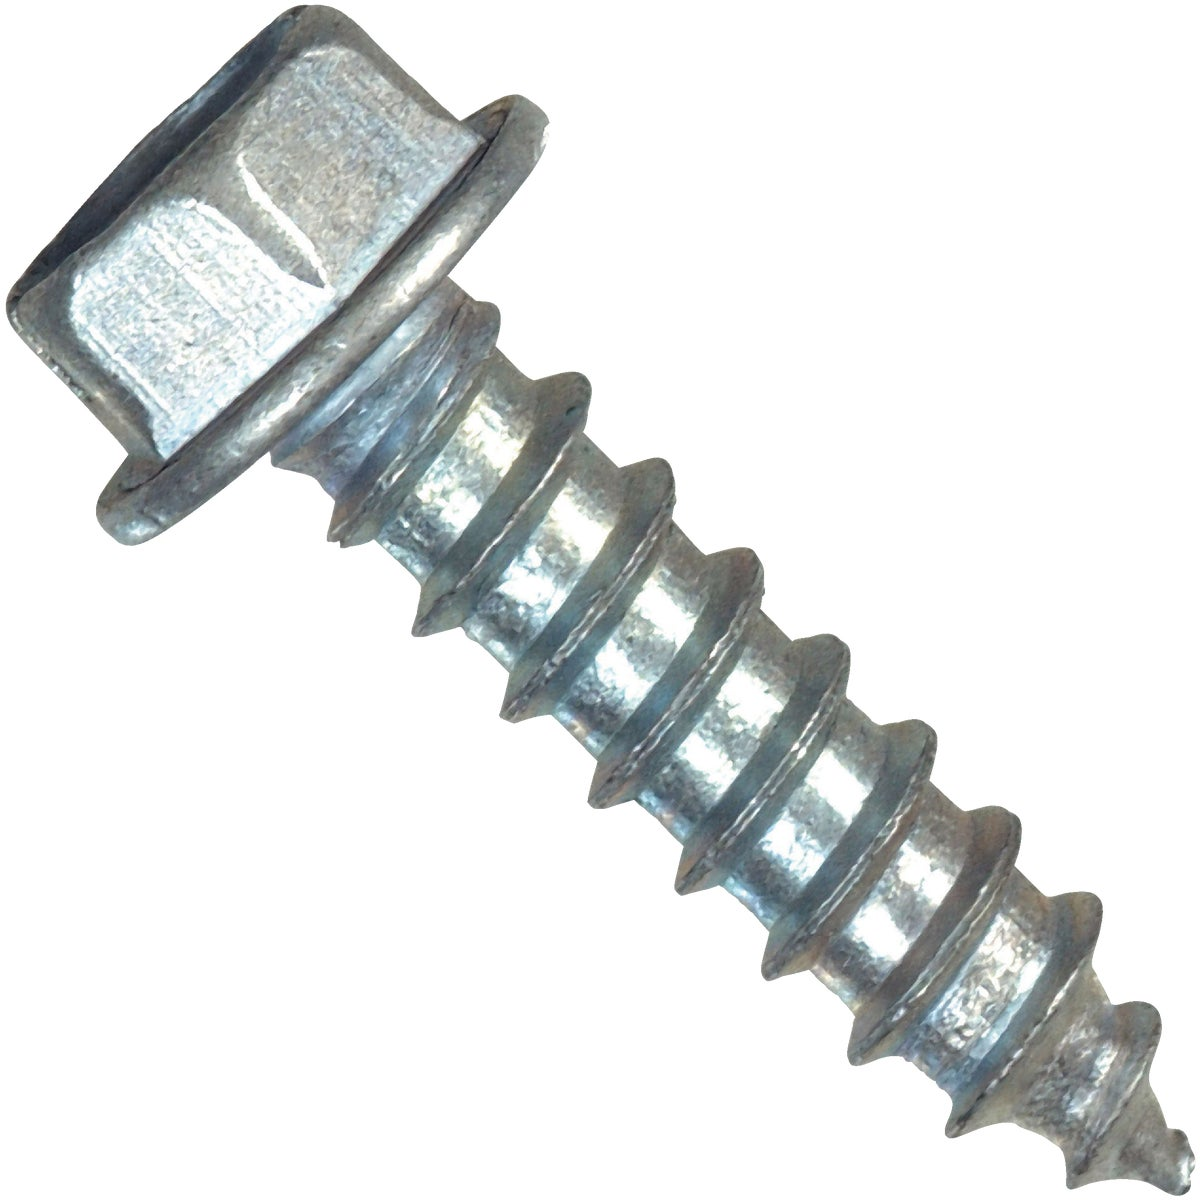 10X1-1/4 HWH ST MT SCREW - 70301 by Hillman Fastener